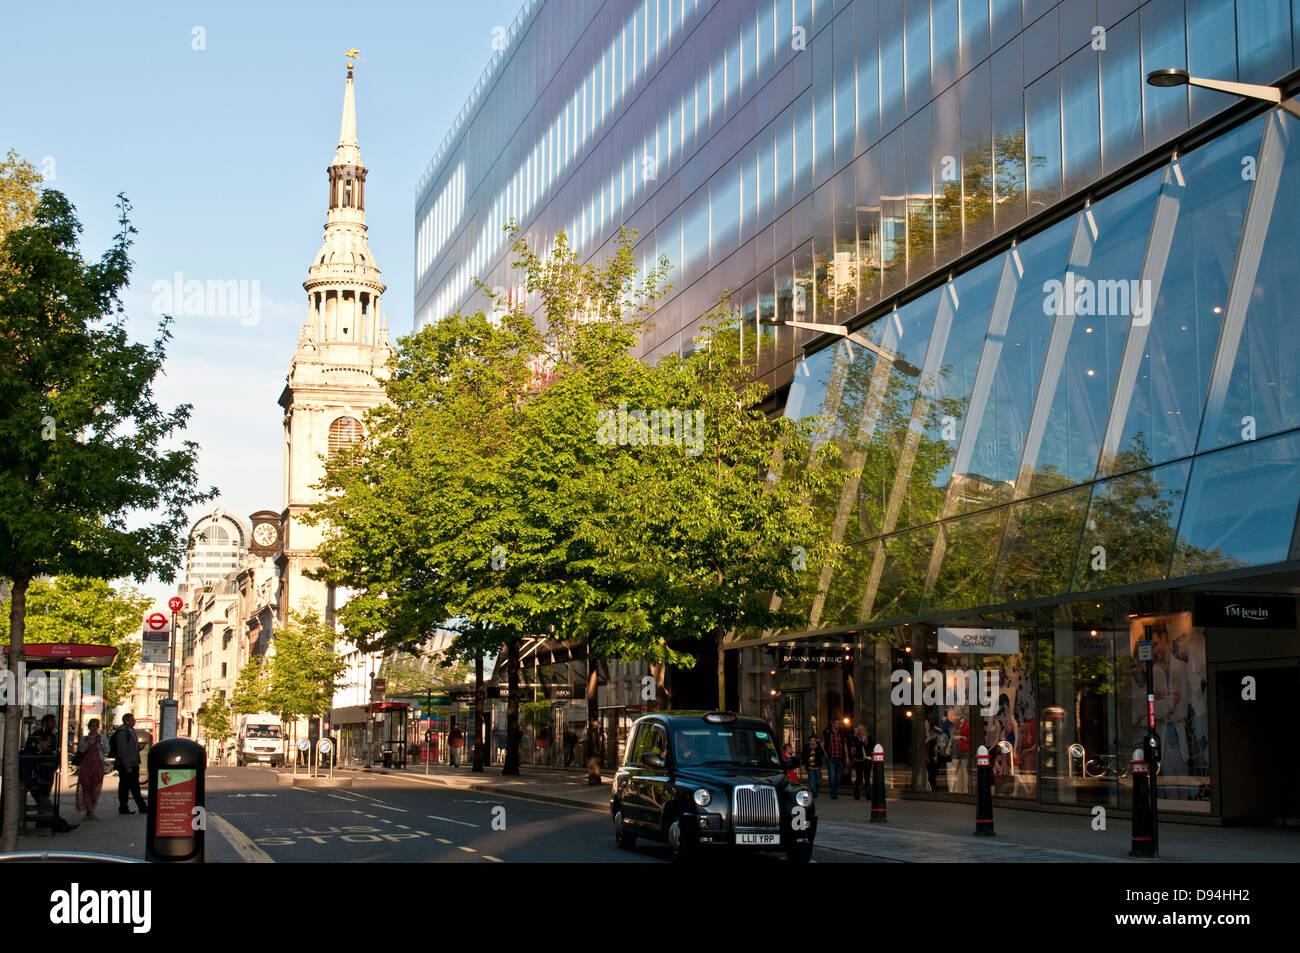 One New Change shopping centre on Cheapside and St Mary le Bow Church, London, UK - Stock Image